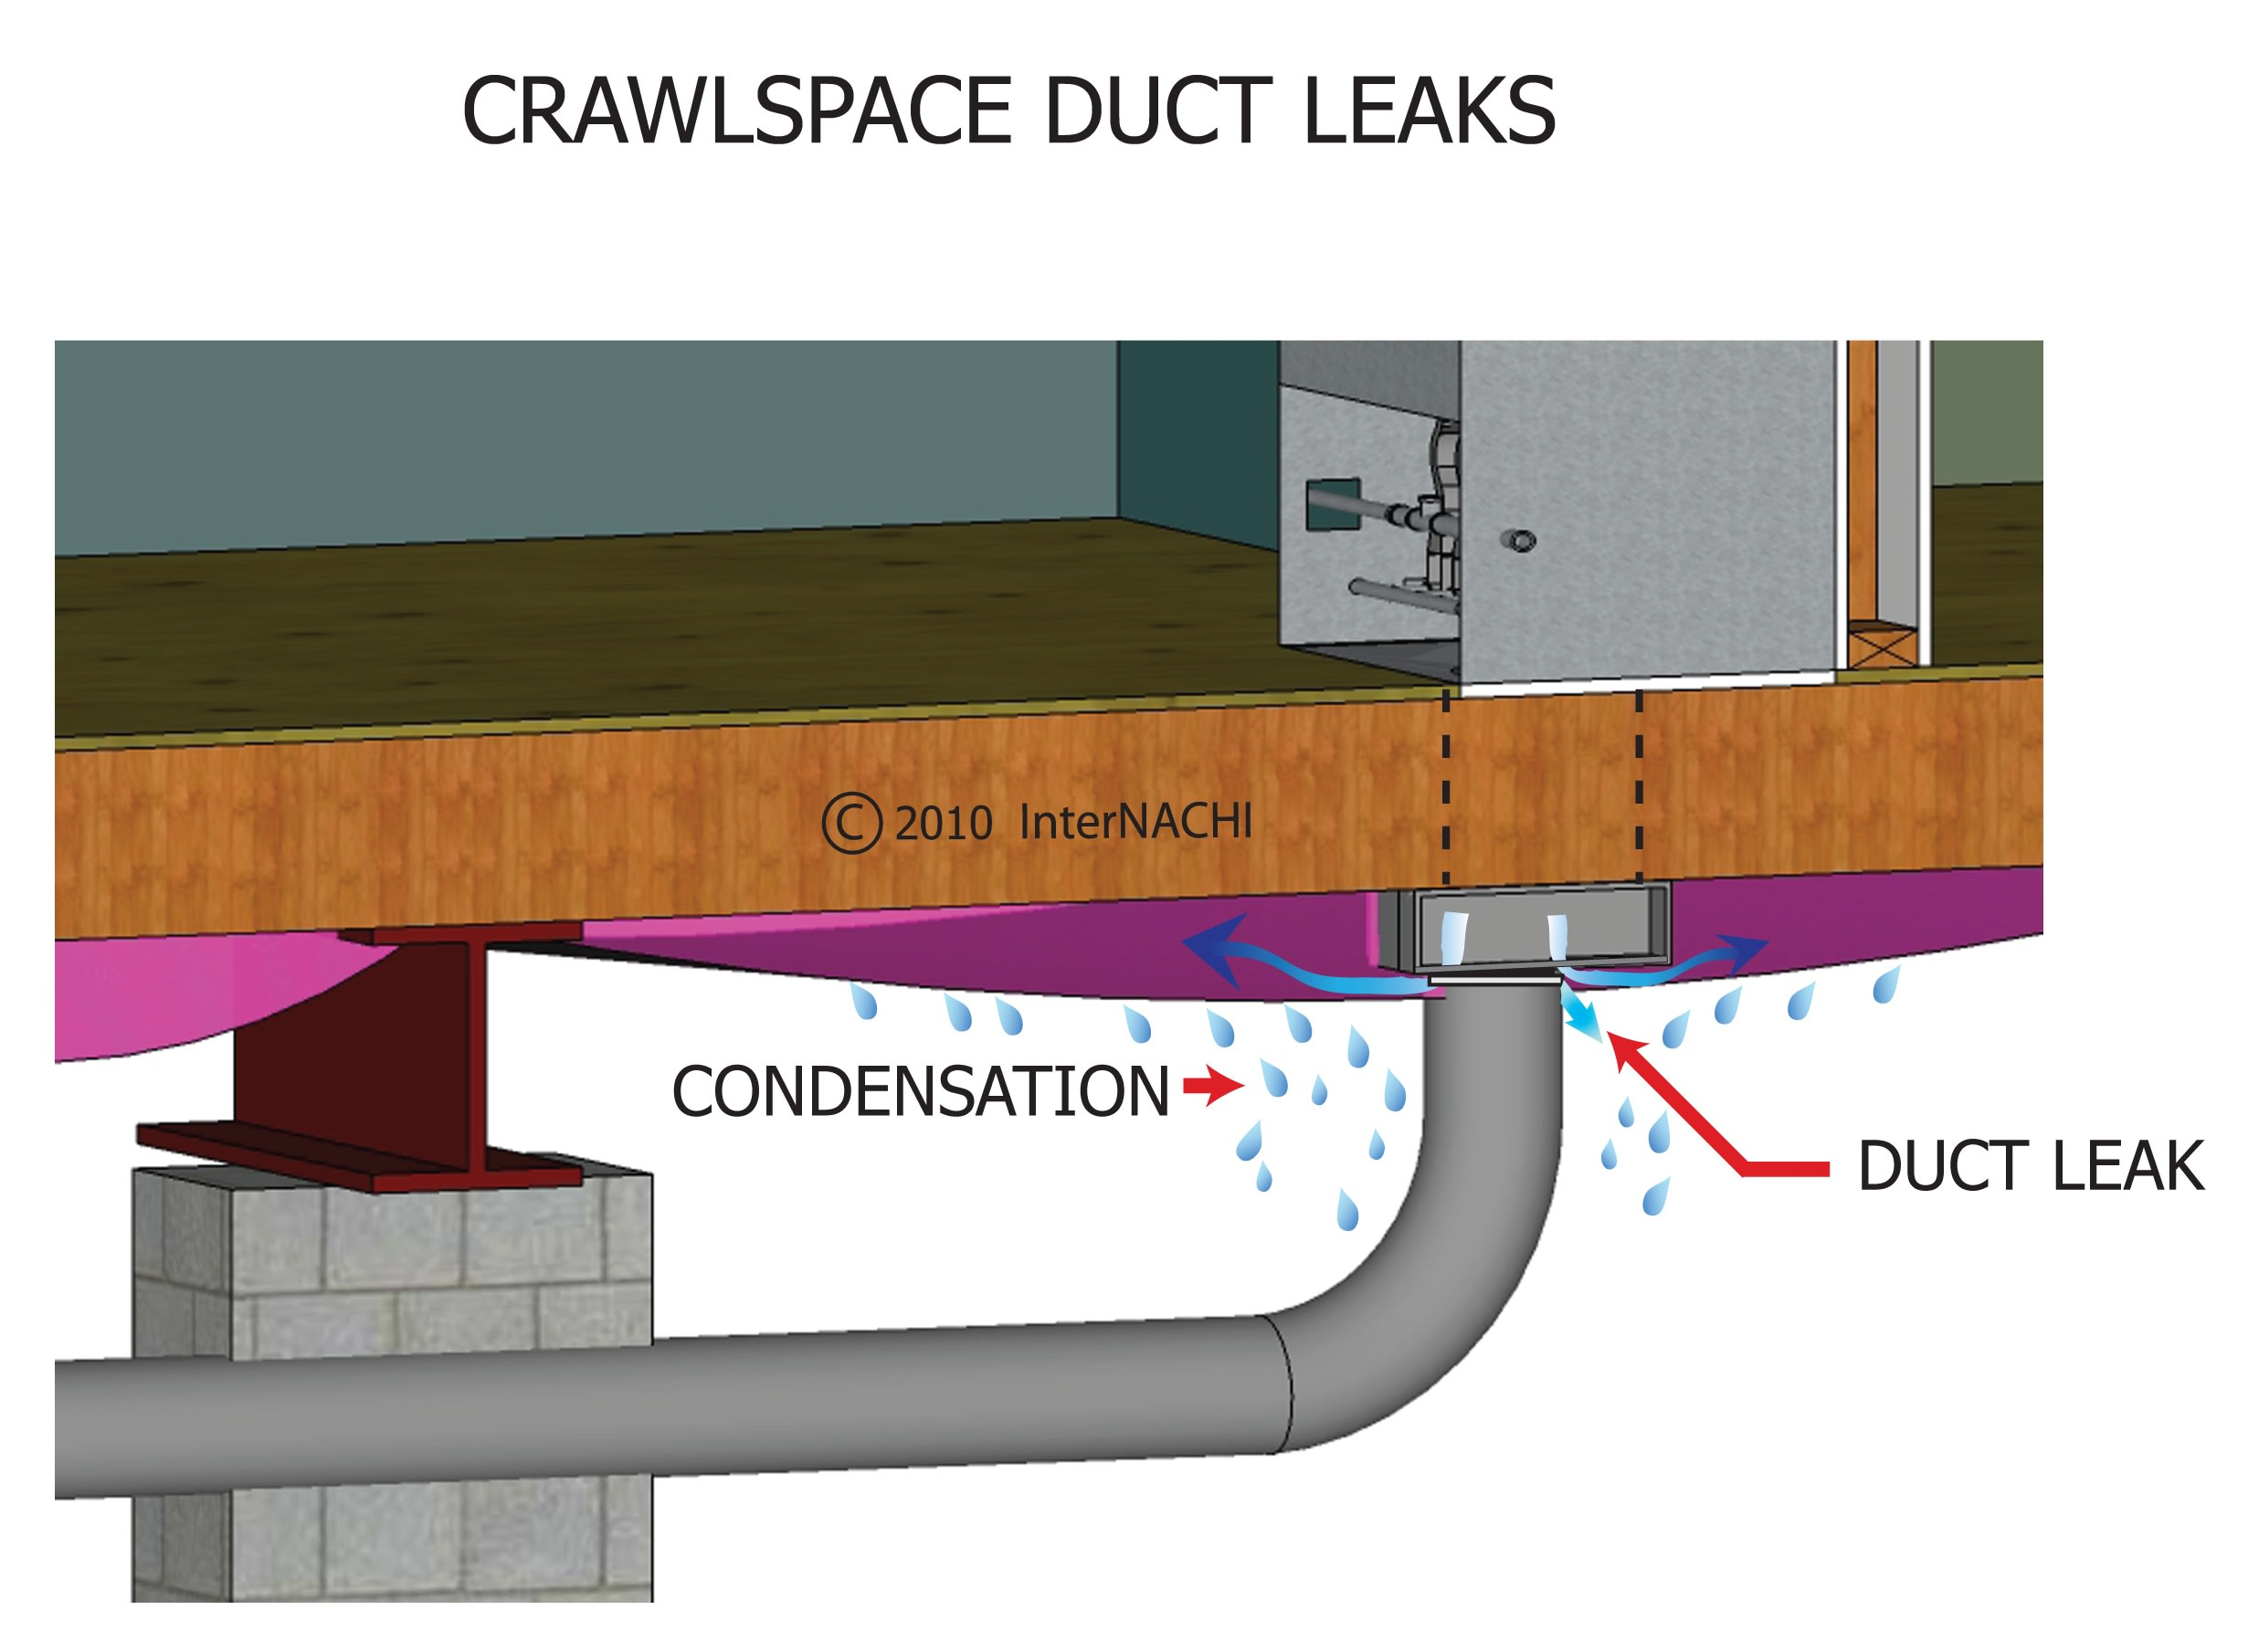 Crawlspace duct leaks.